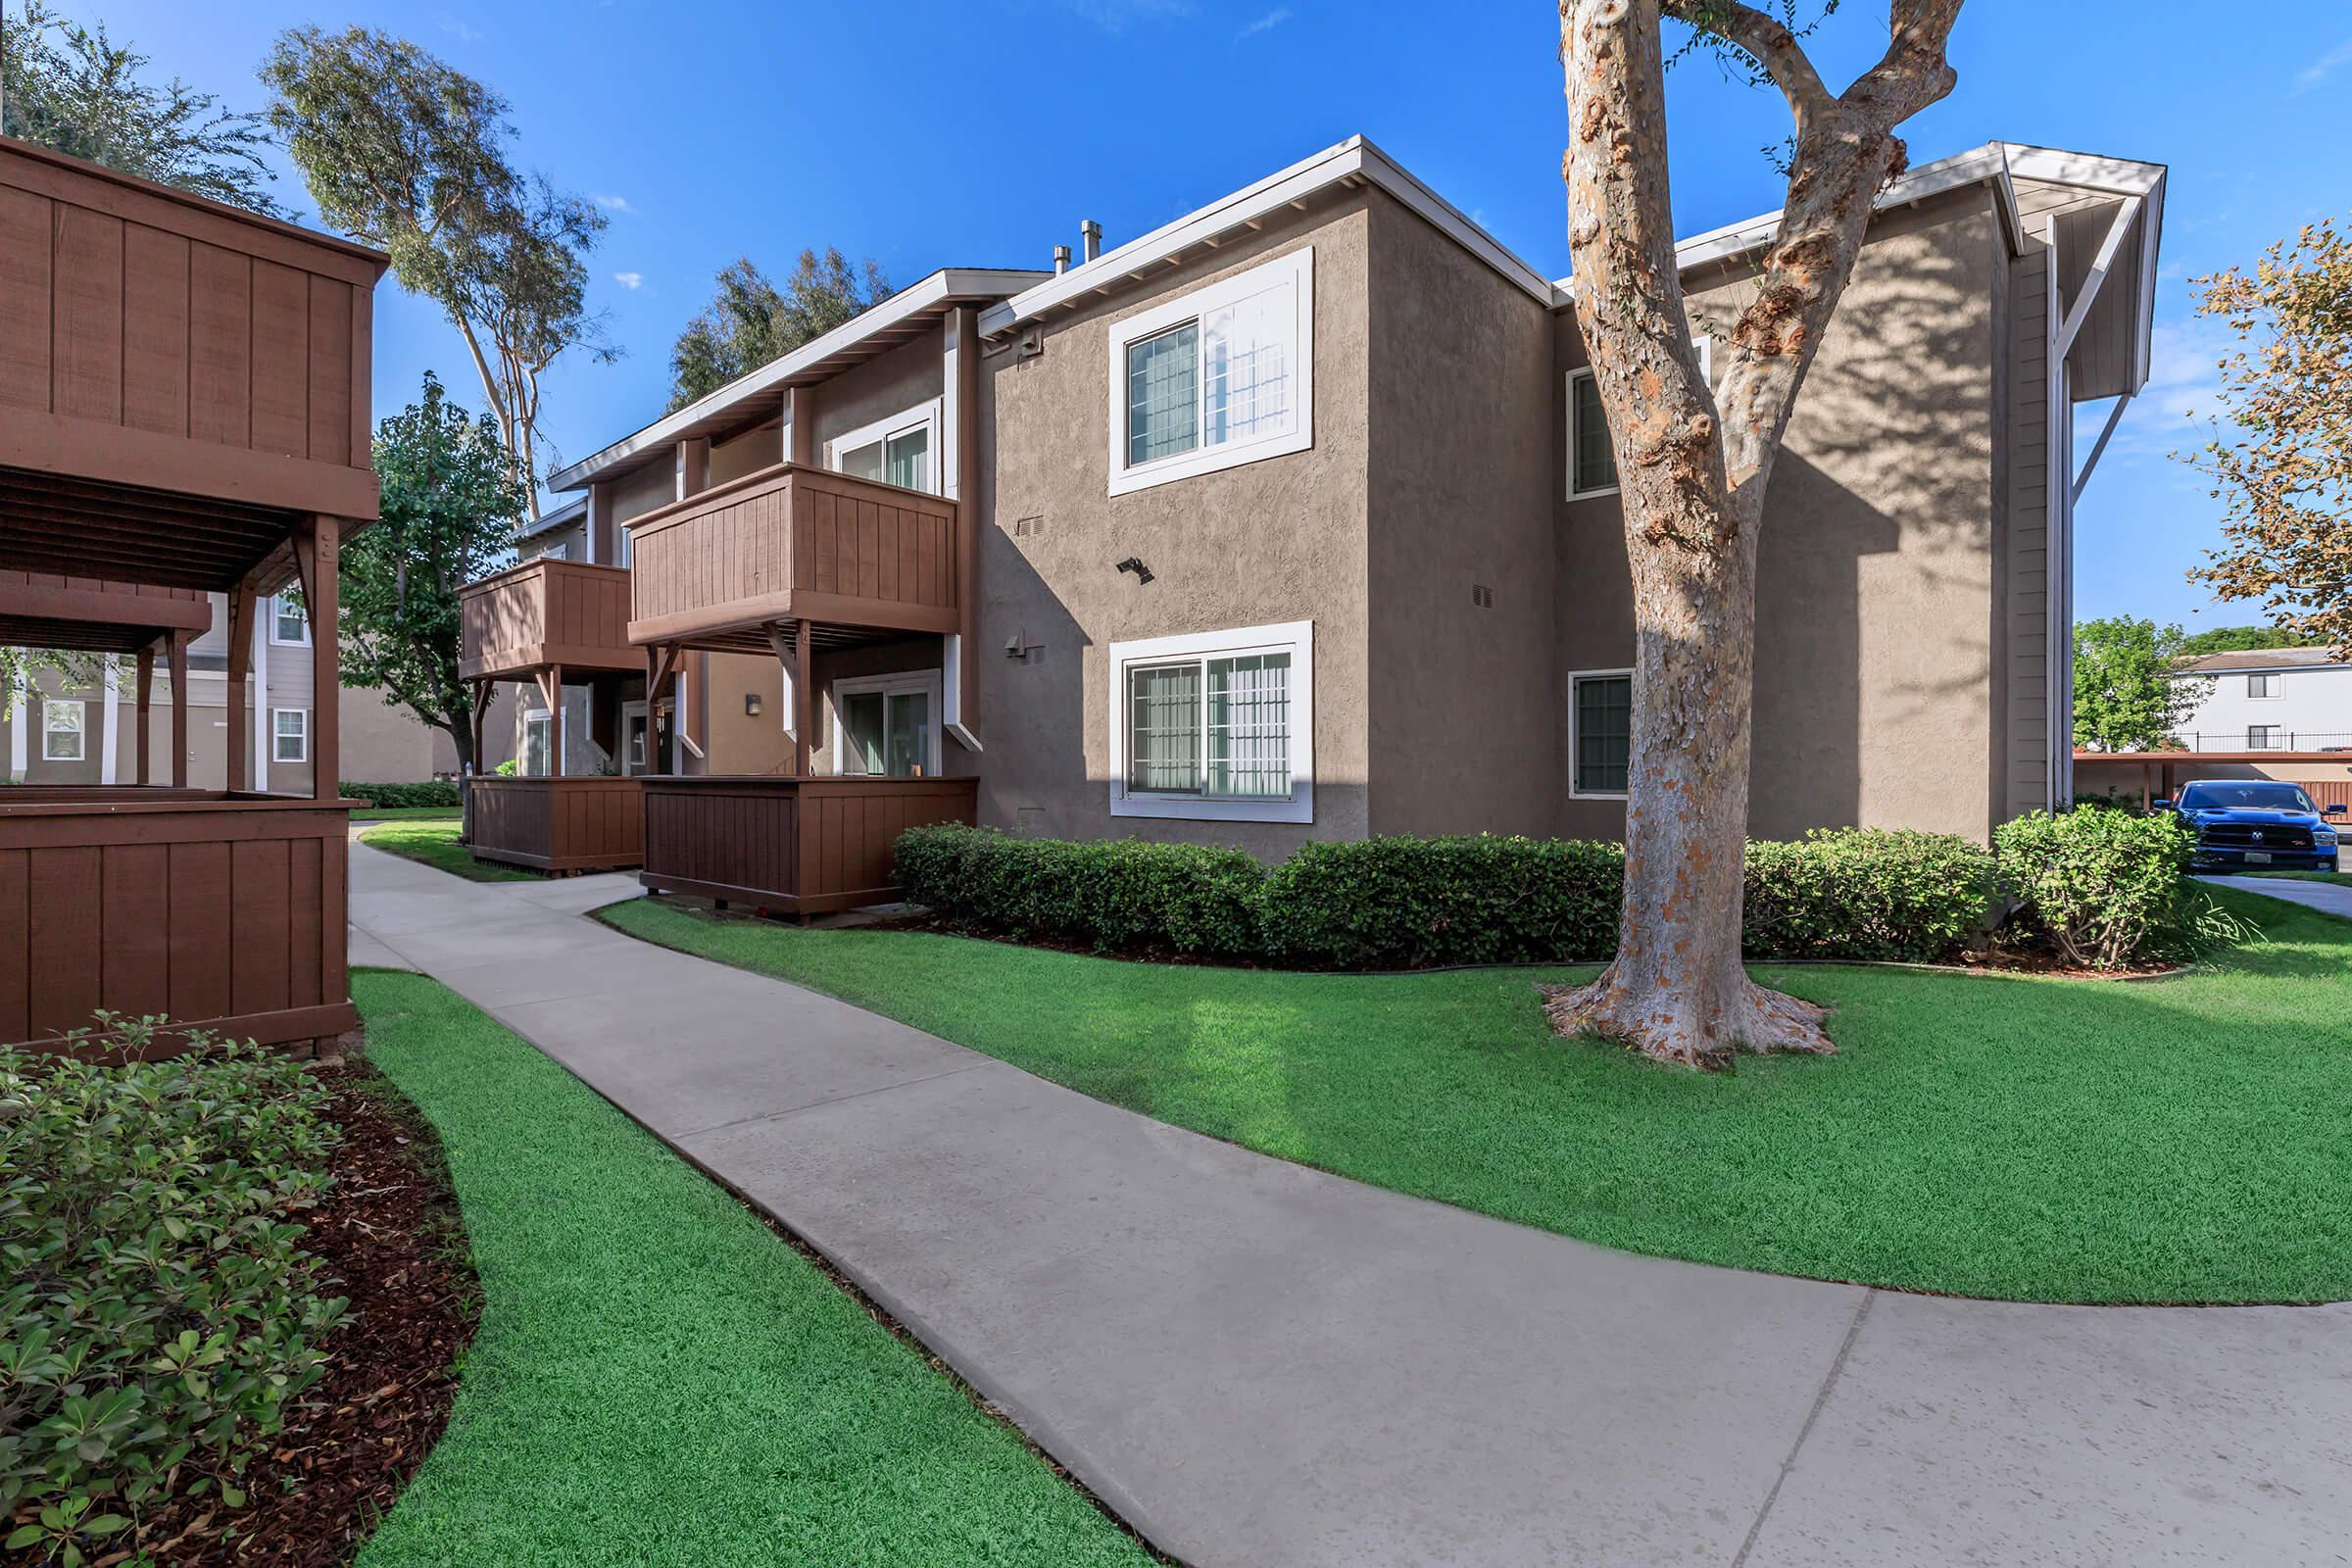 Landscape at Copper Wood  Apartments in Chino, CA